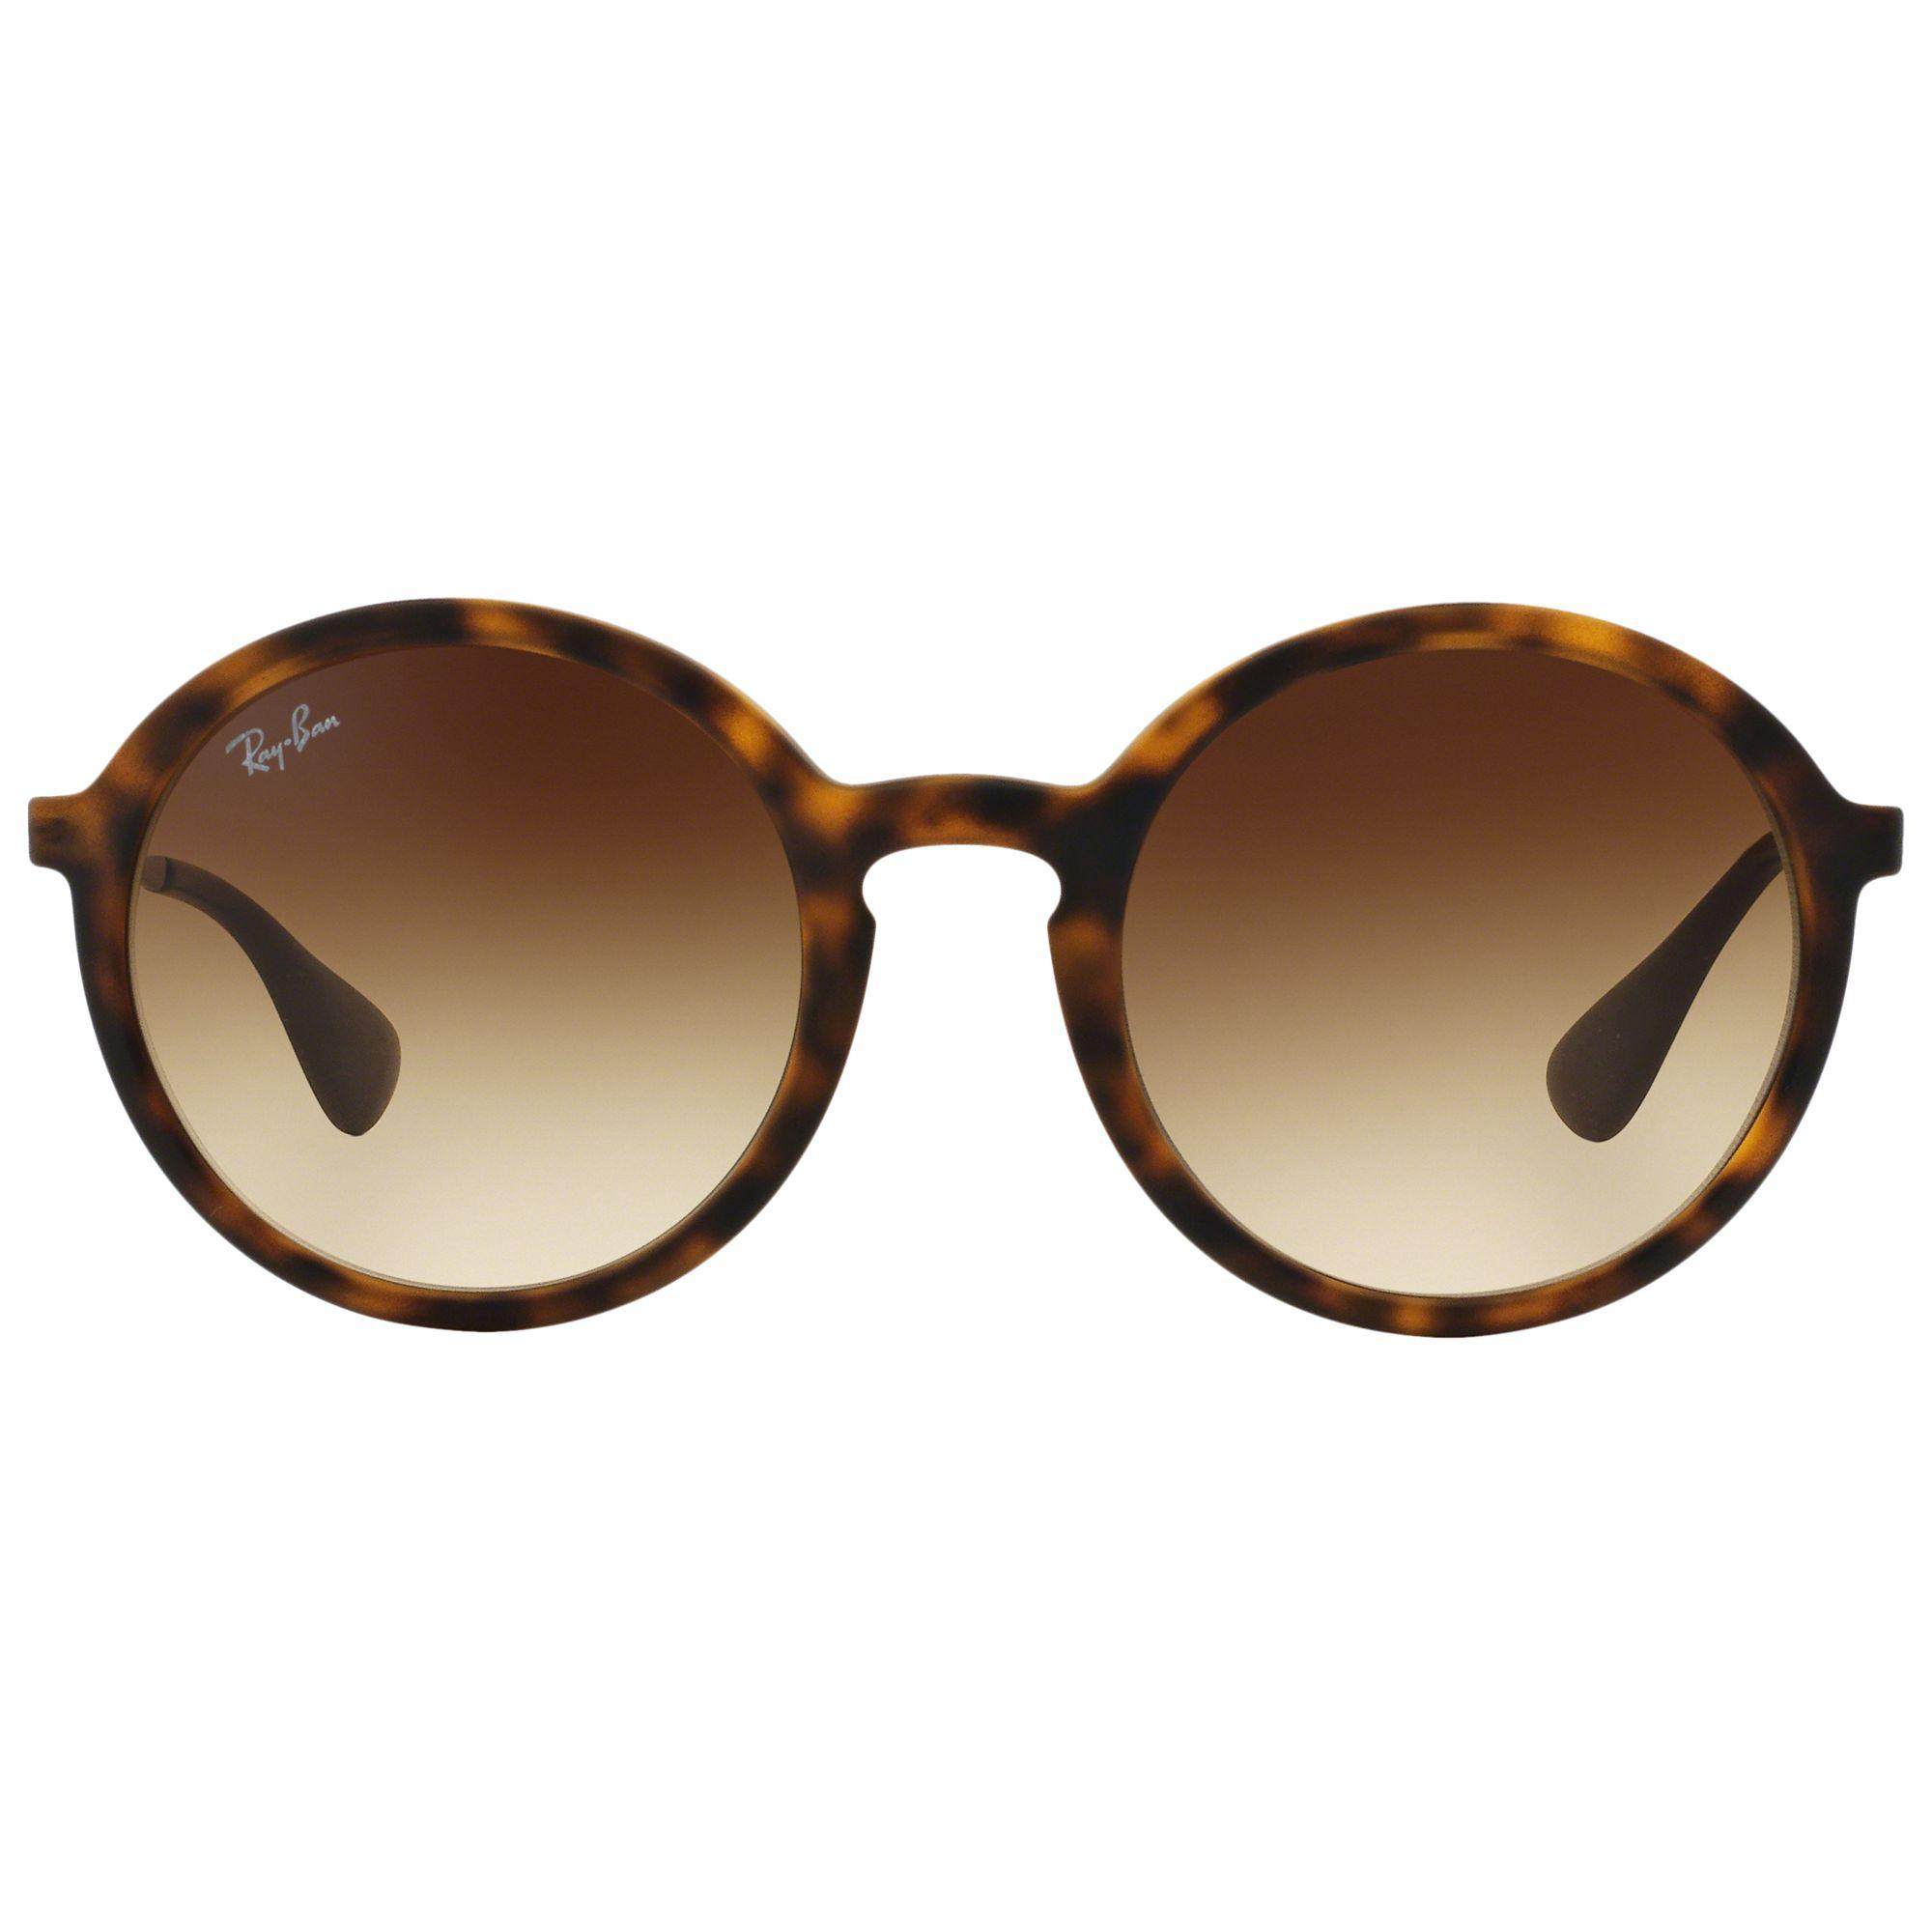 Ray-Ban Rb4222 Oval Sunglasses in Brown